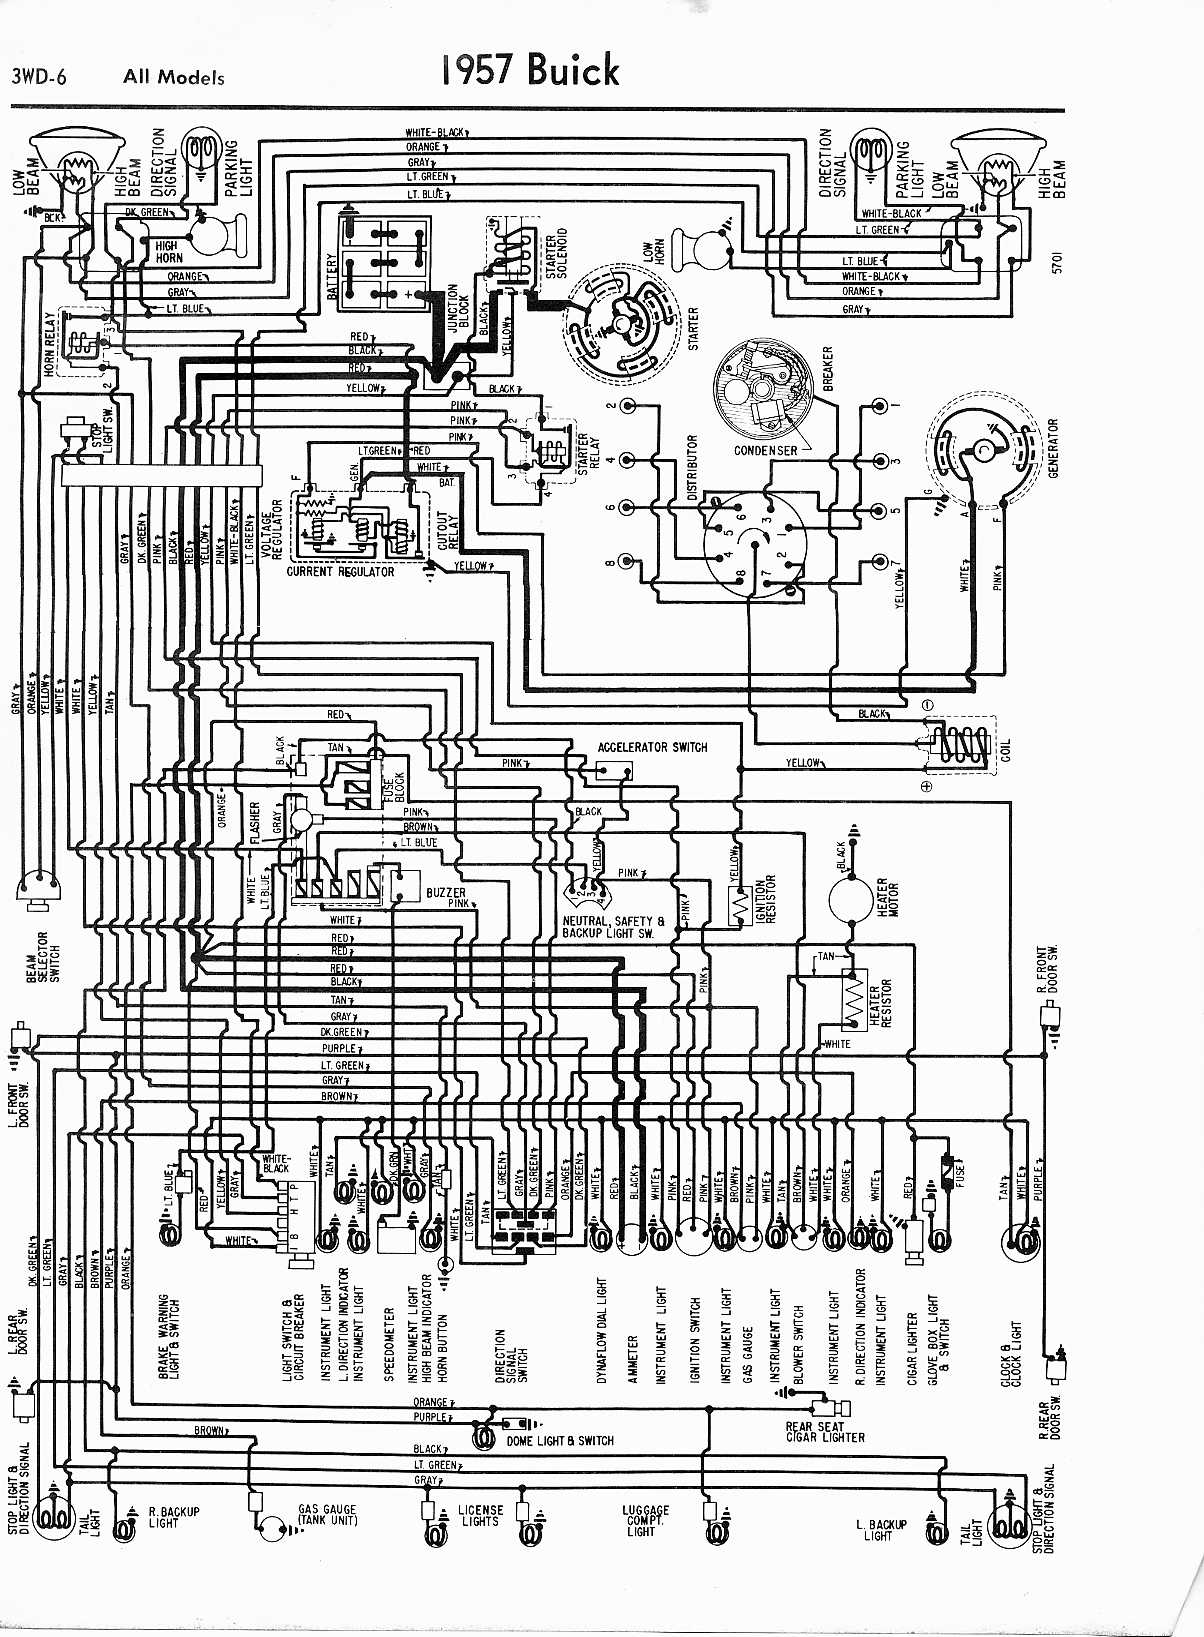 buick 455 wiring diagram all wiring diagram 1970 buick 455 wiring diagram integrated wiring diagrams u2022 2005 buick lesabre wiring diagram buick 455 wiring diagram